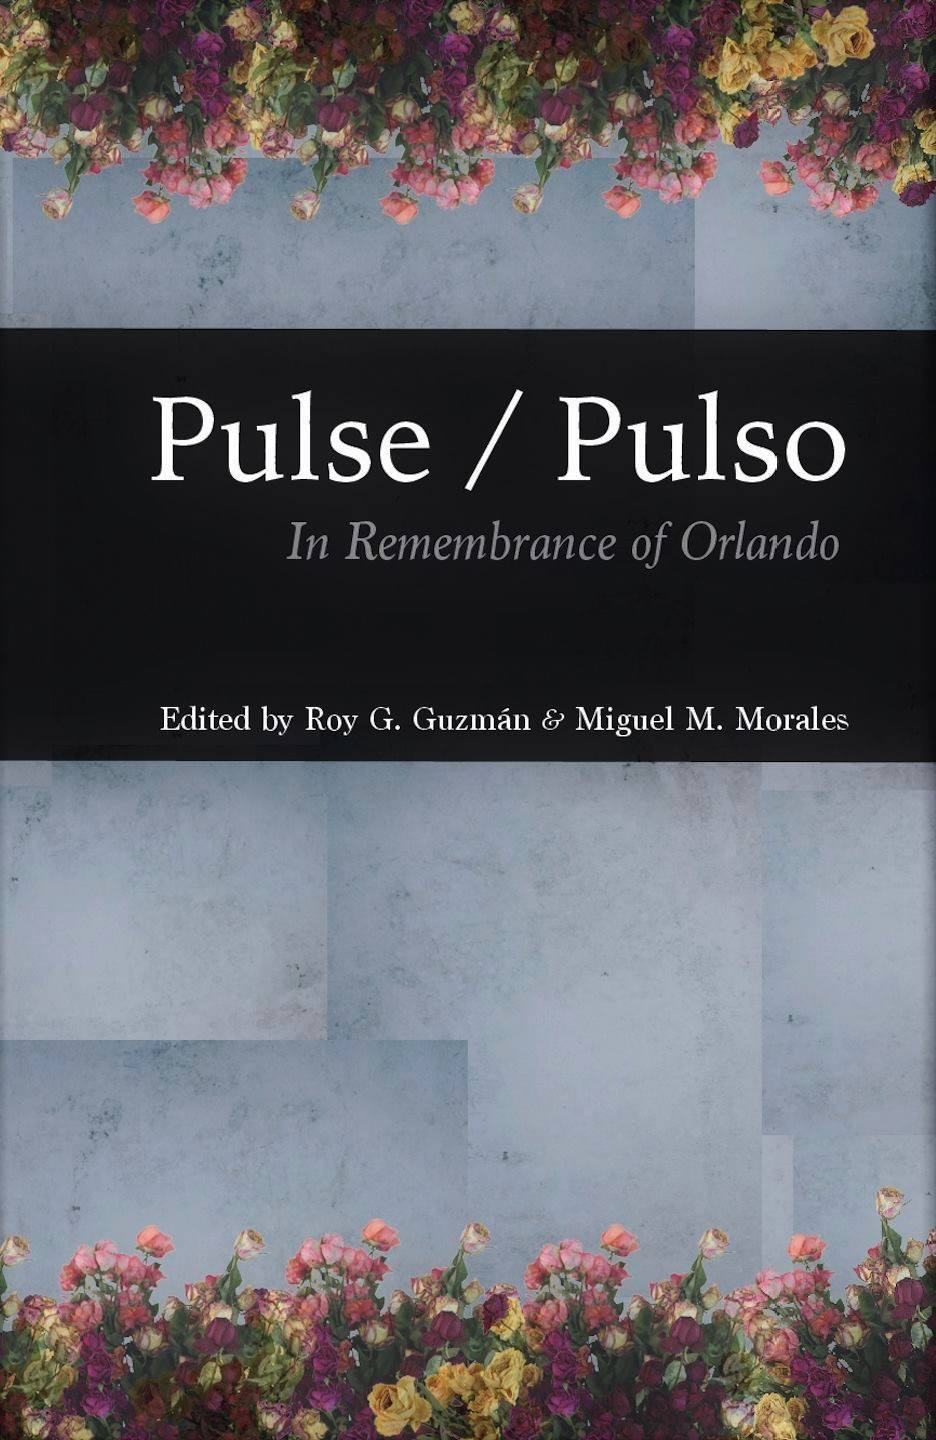 Pulse/Pulso: In Remembrance of Orlando